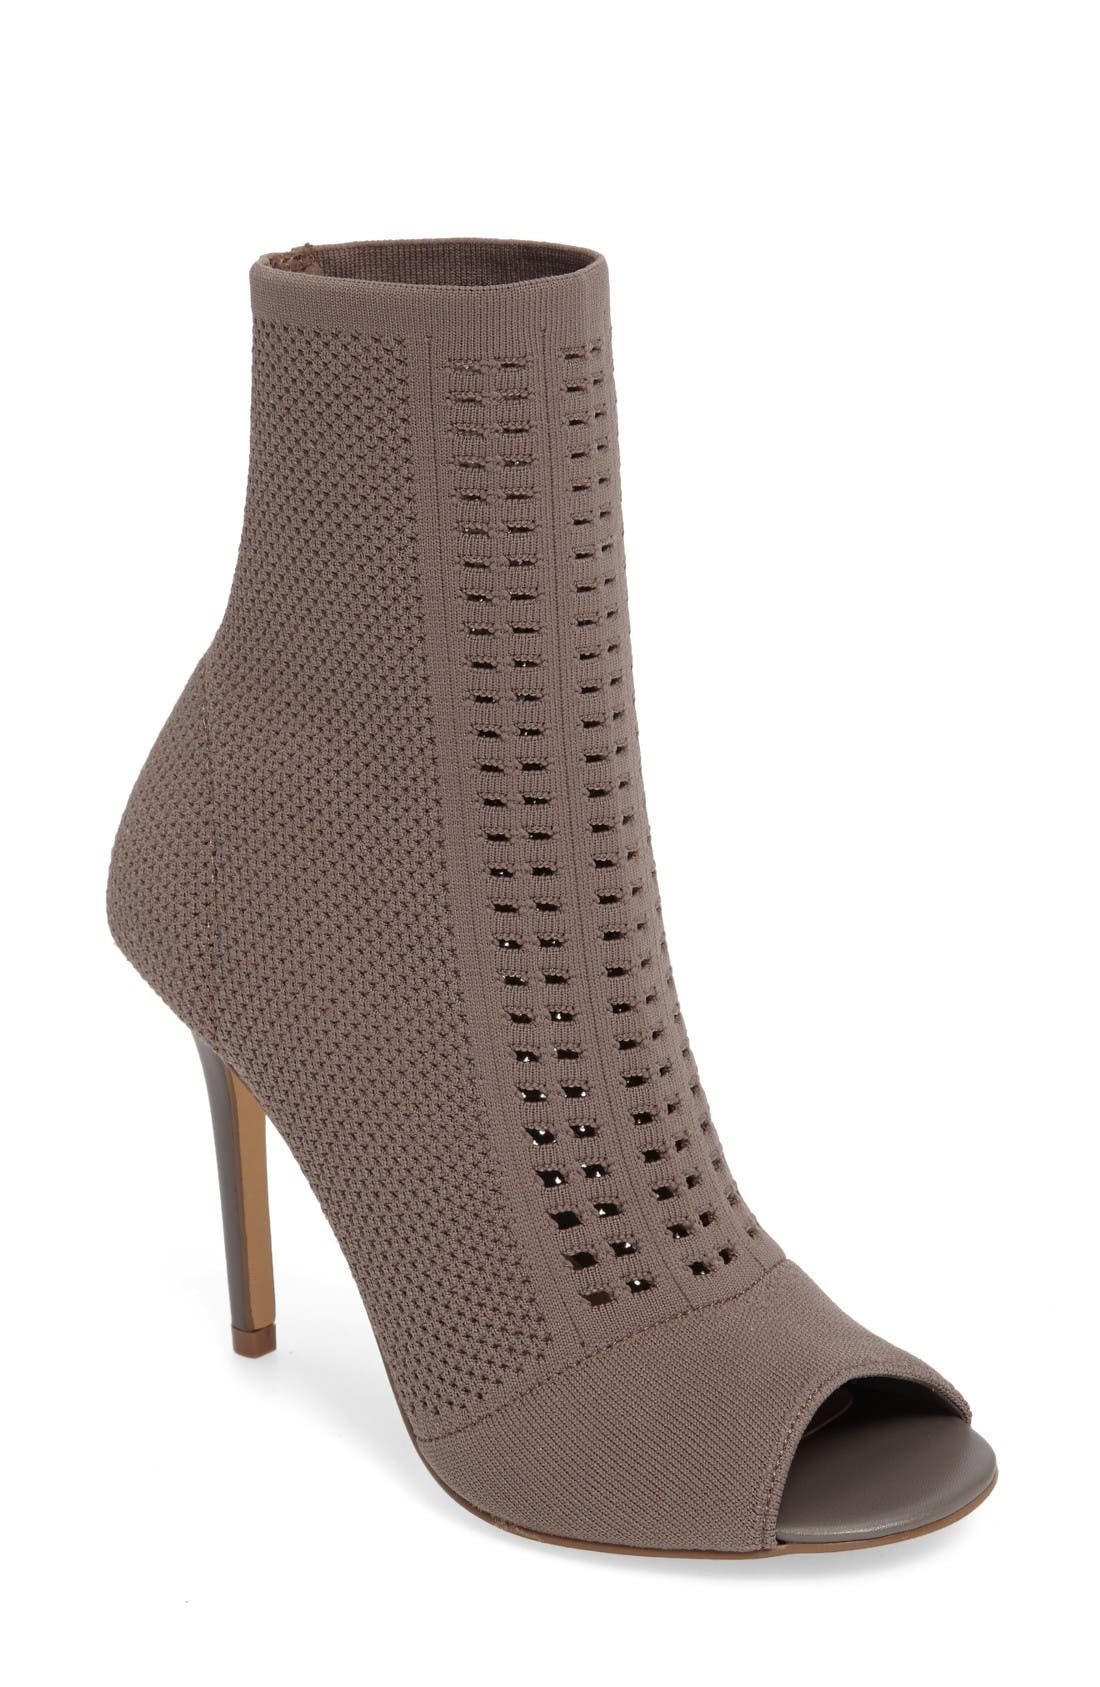 Main Image - Charles by Charles David Rebellious Knit Peep Toe Bootie (Women)